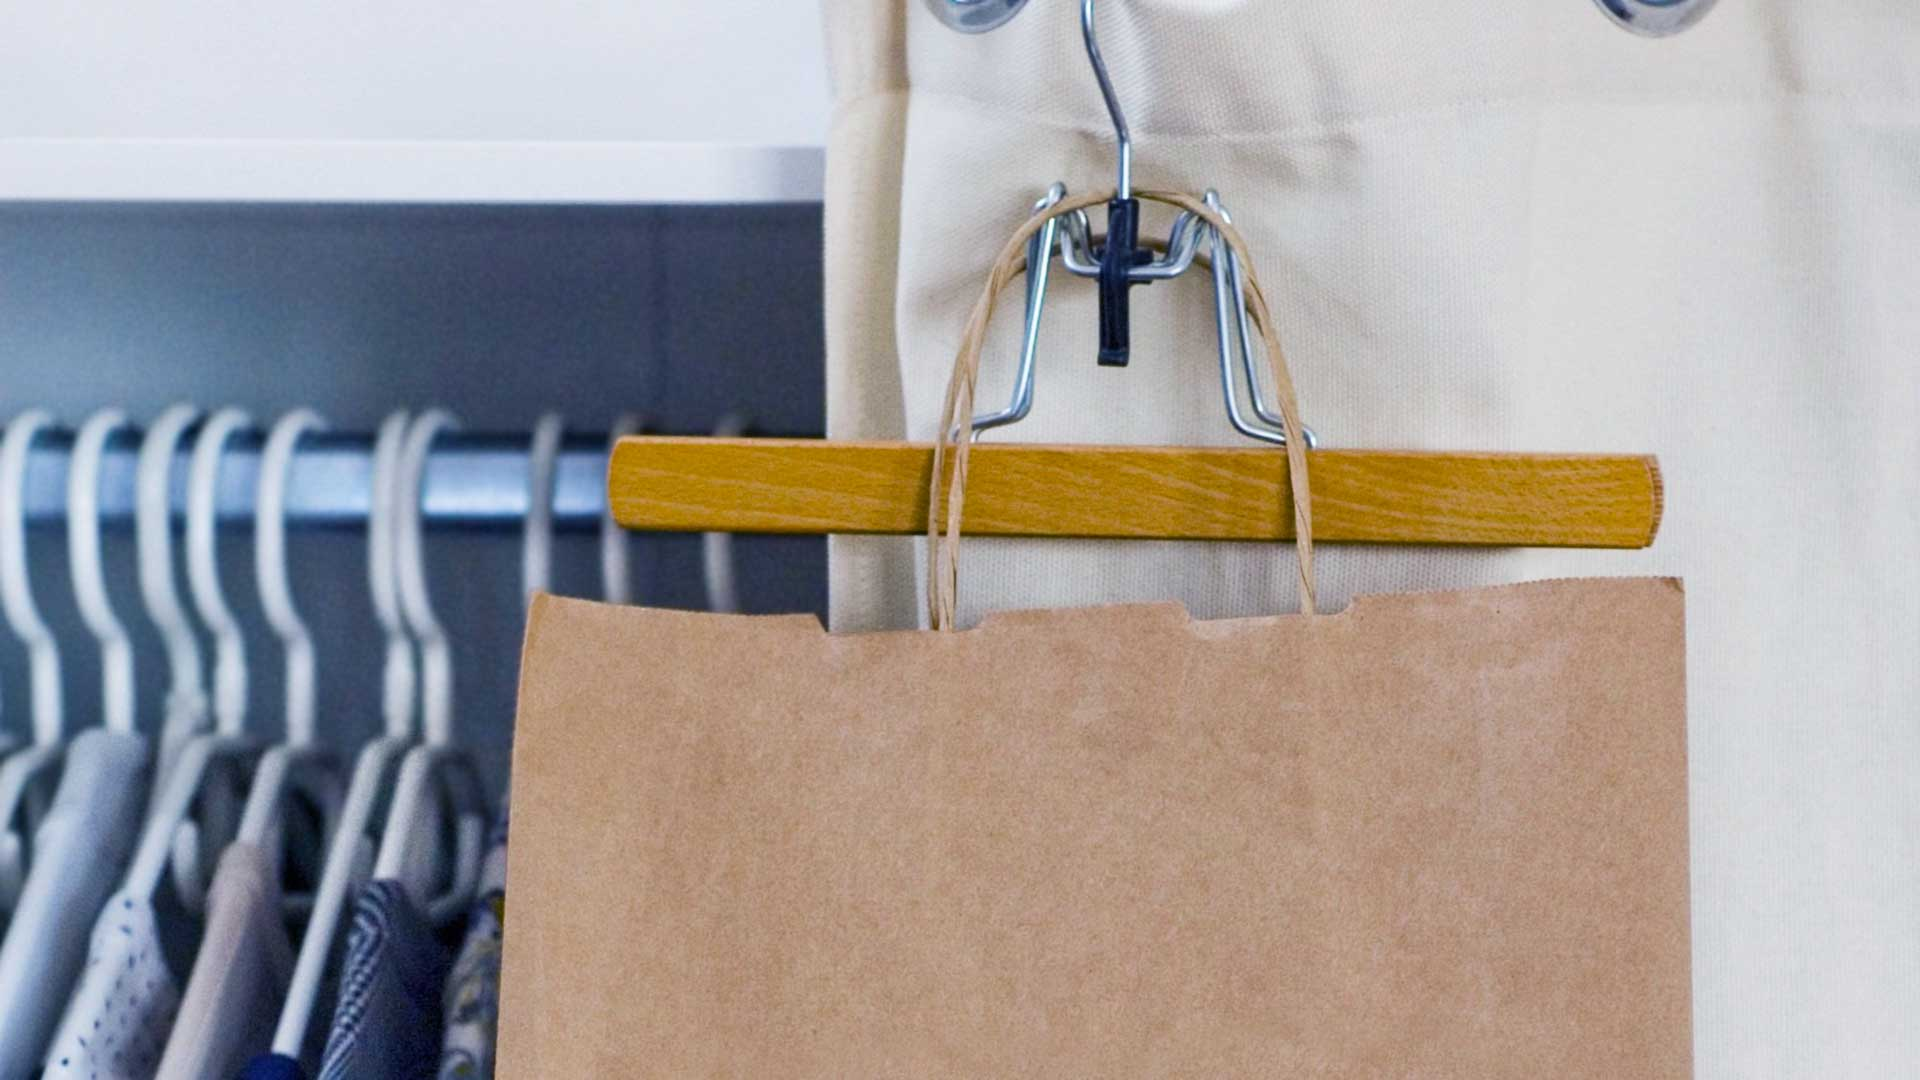 Learn which shops in Mount Pleasant are most recommended.